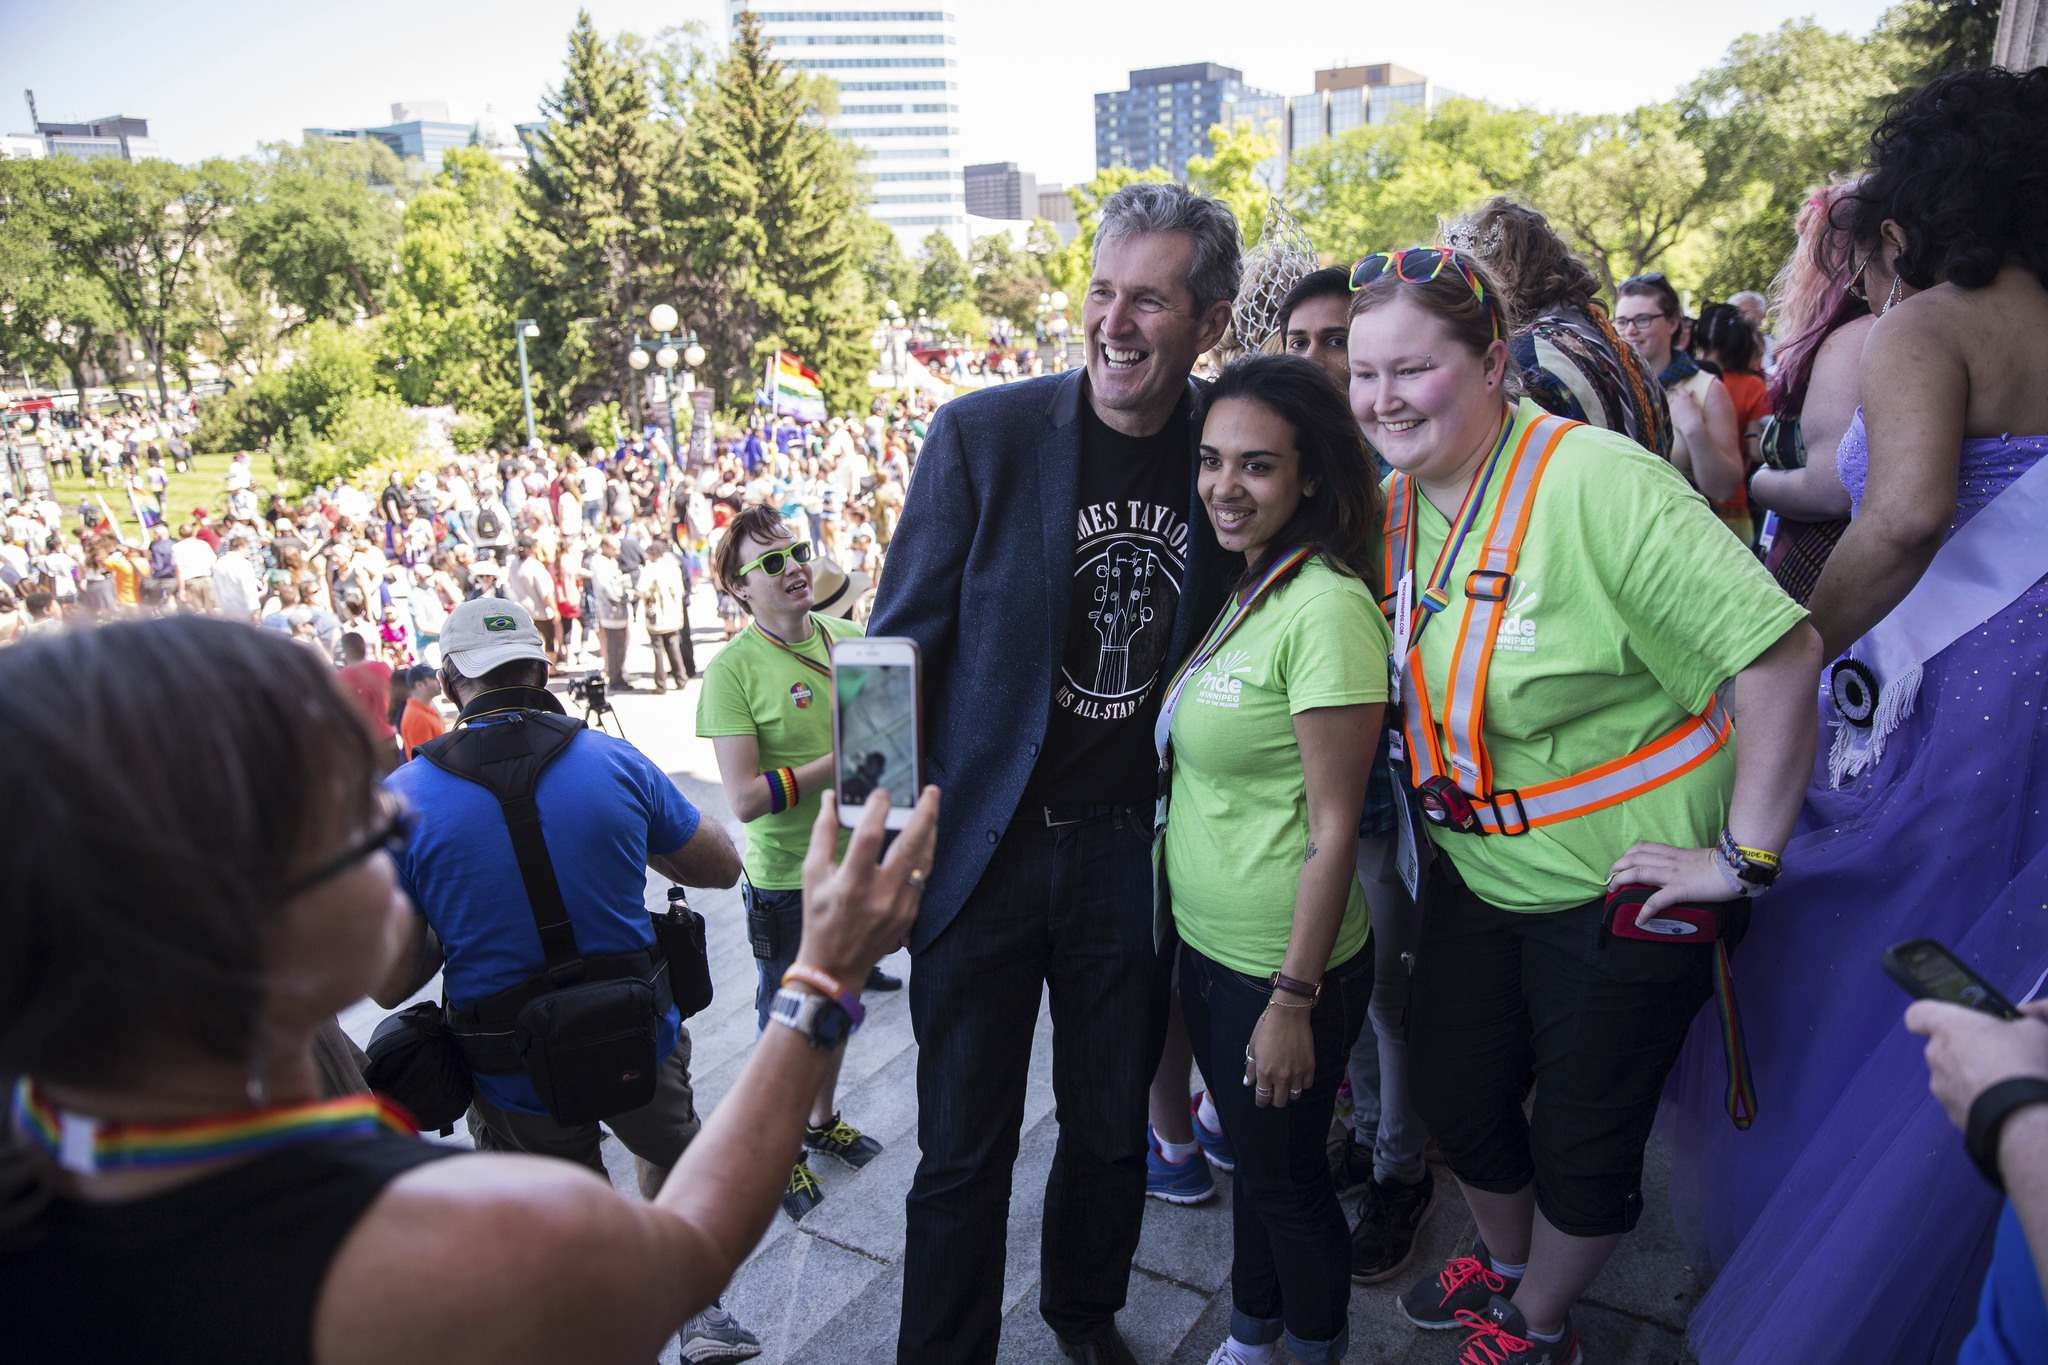 MIKE DEAL / WINNIPEG FREE PRESS FILES</p><p>Premier Brian Pallister gets his photo taken with Mona Mousa (centre) and Amanda Pratt (right) on the steps of the Manitoba Legislative Building before the start of Winnipeg's Pride parade in June.</p>